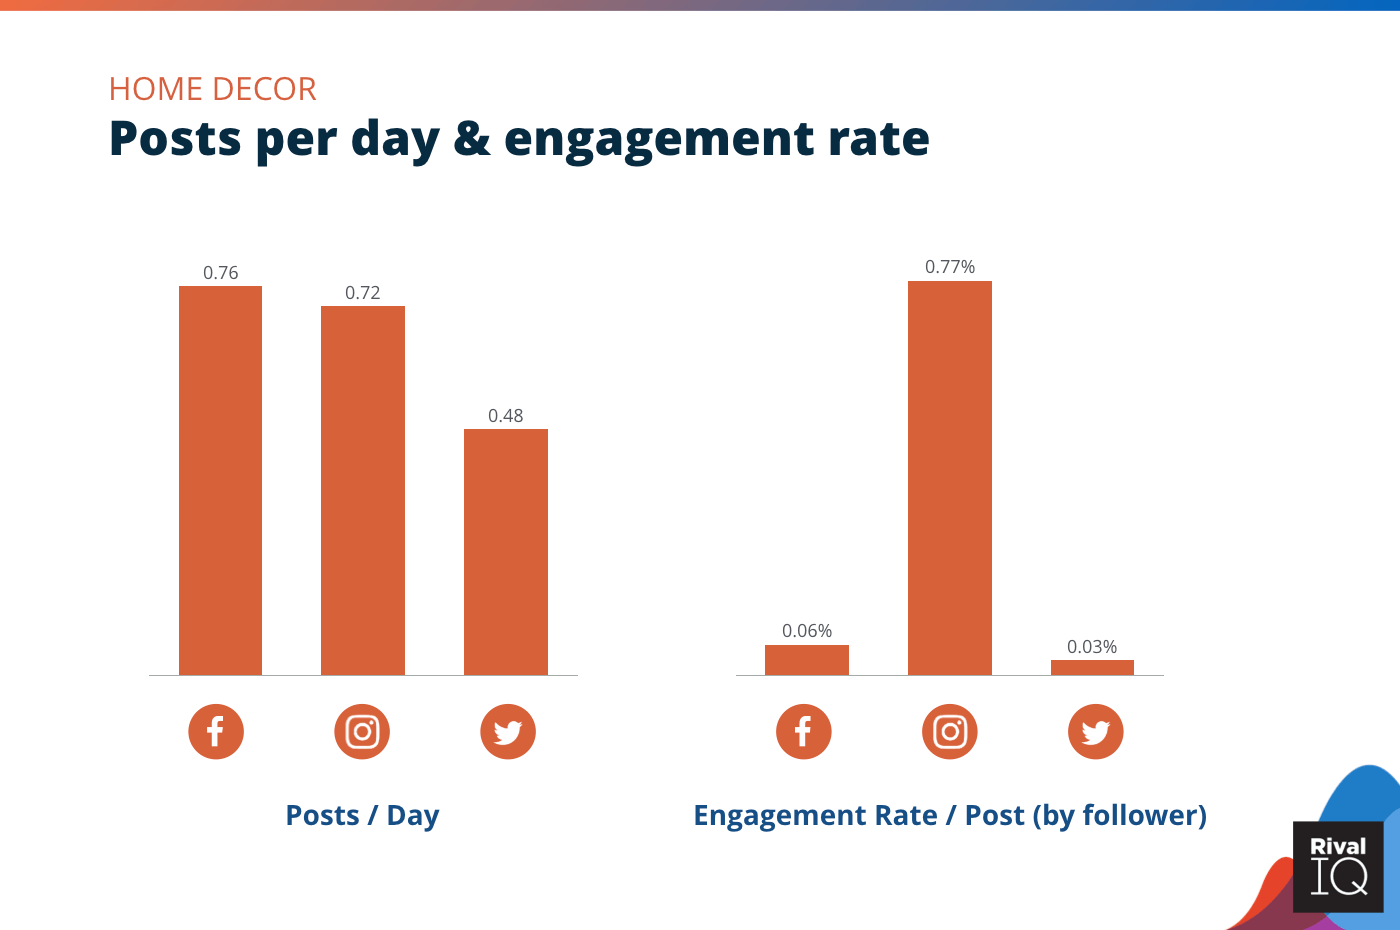 Chart of Posts per day and engagement rate per post across all channels, Home Decor